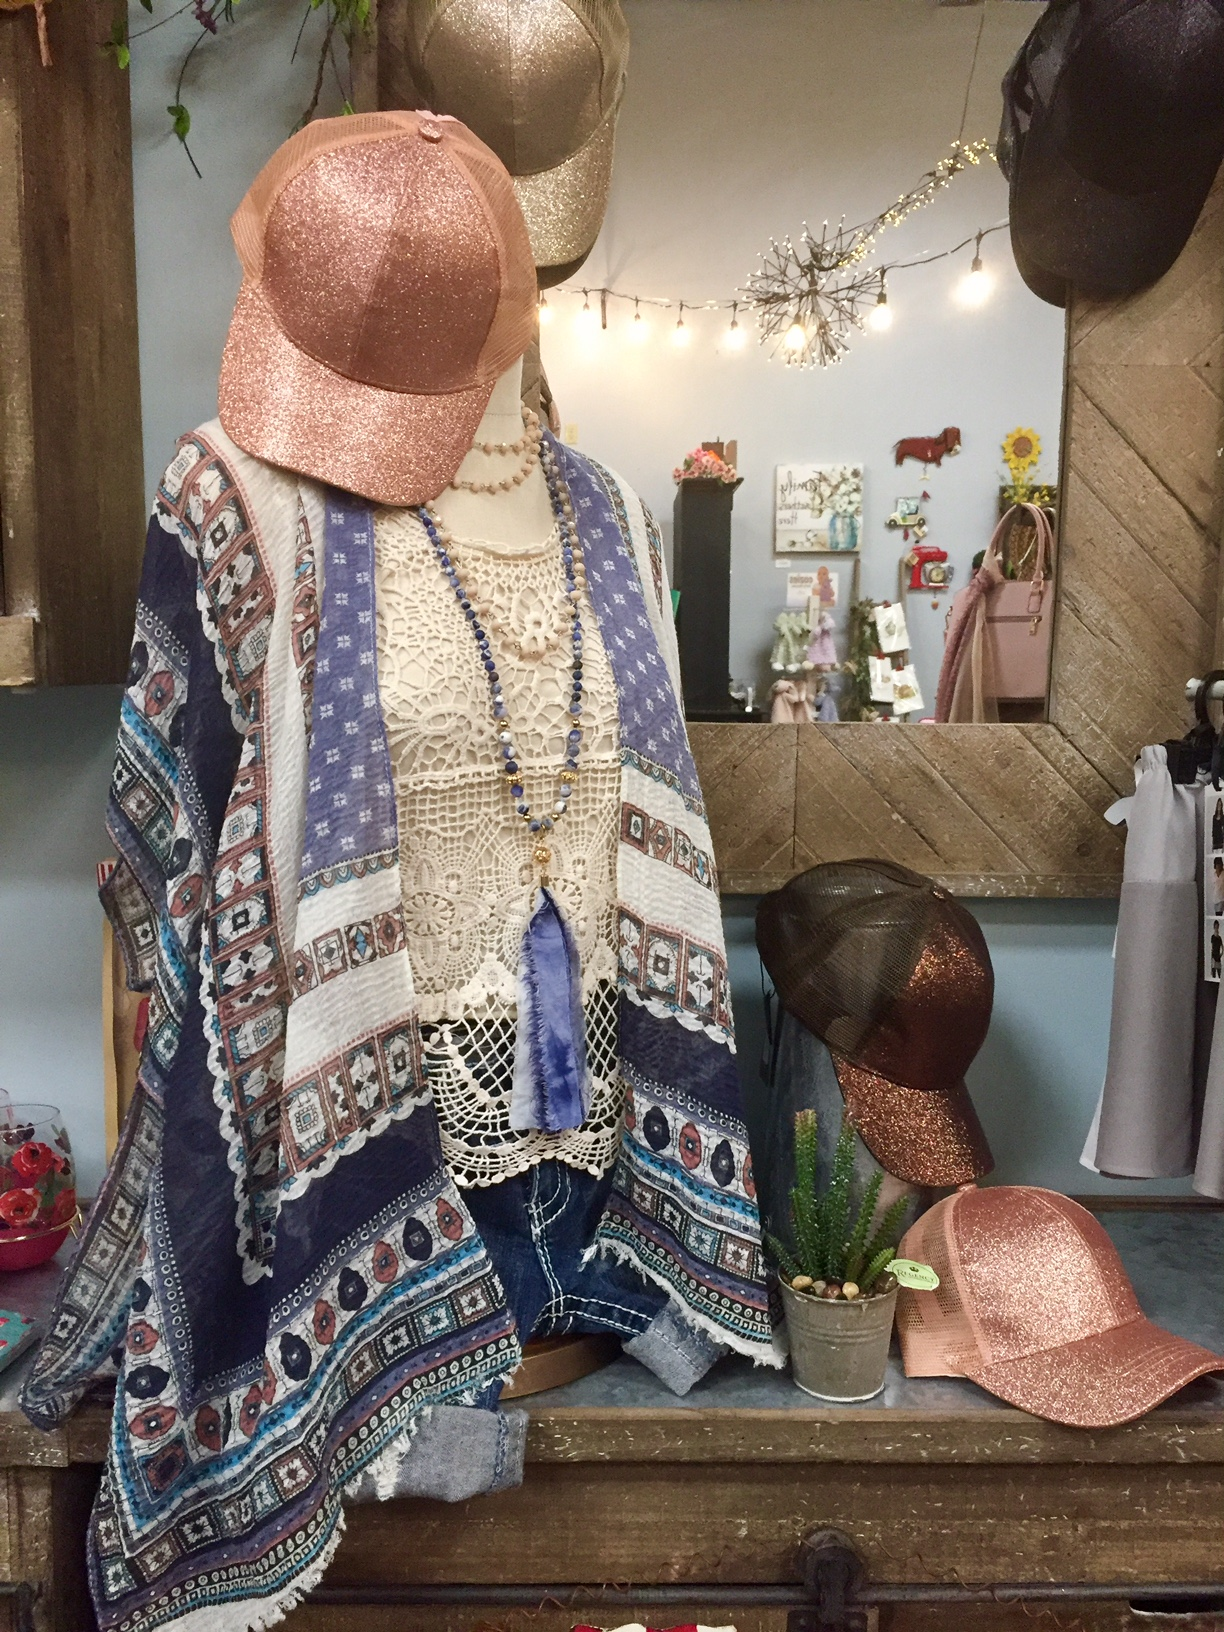 Kimonos, hats, bags, jewelry and more